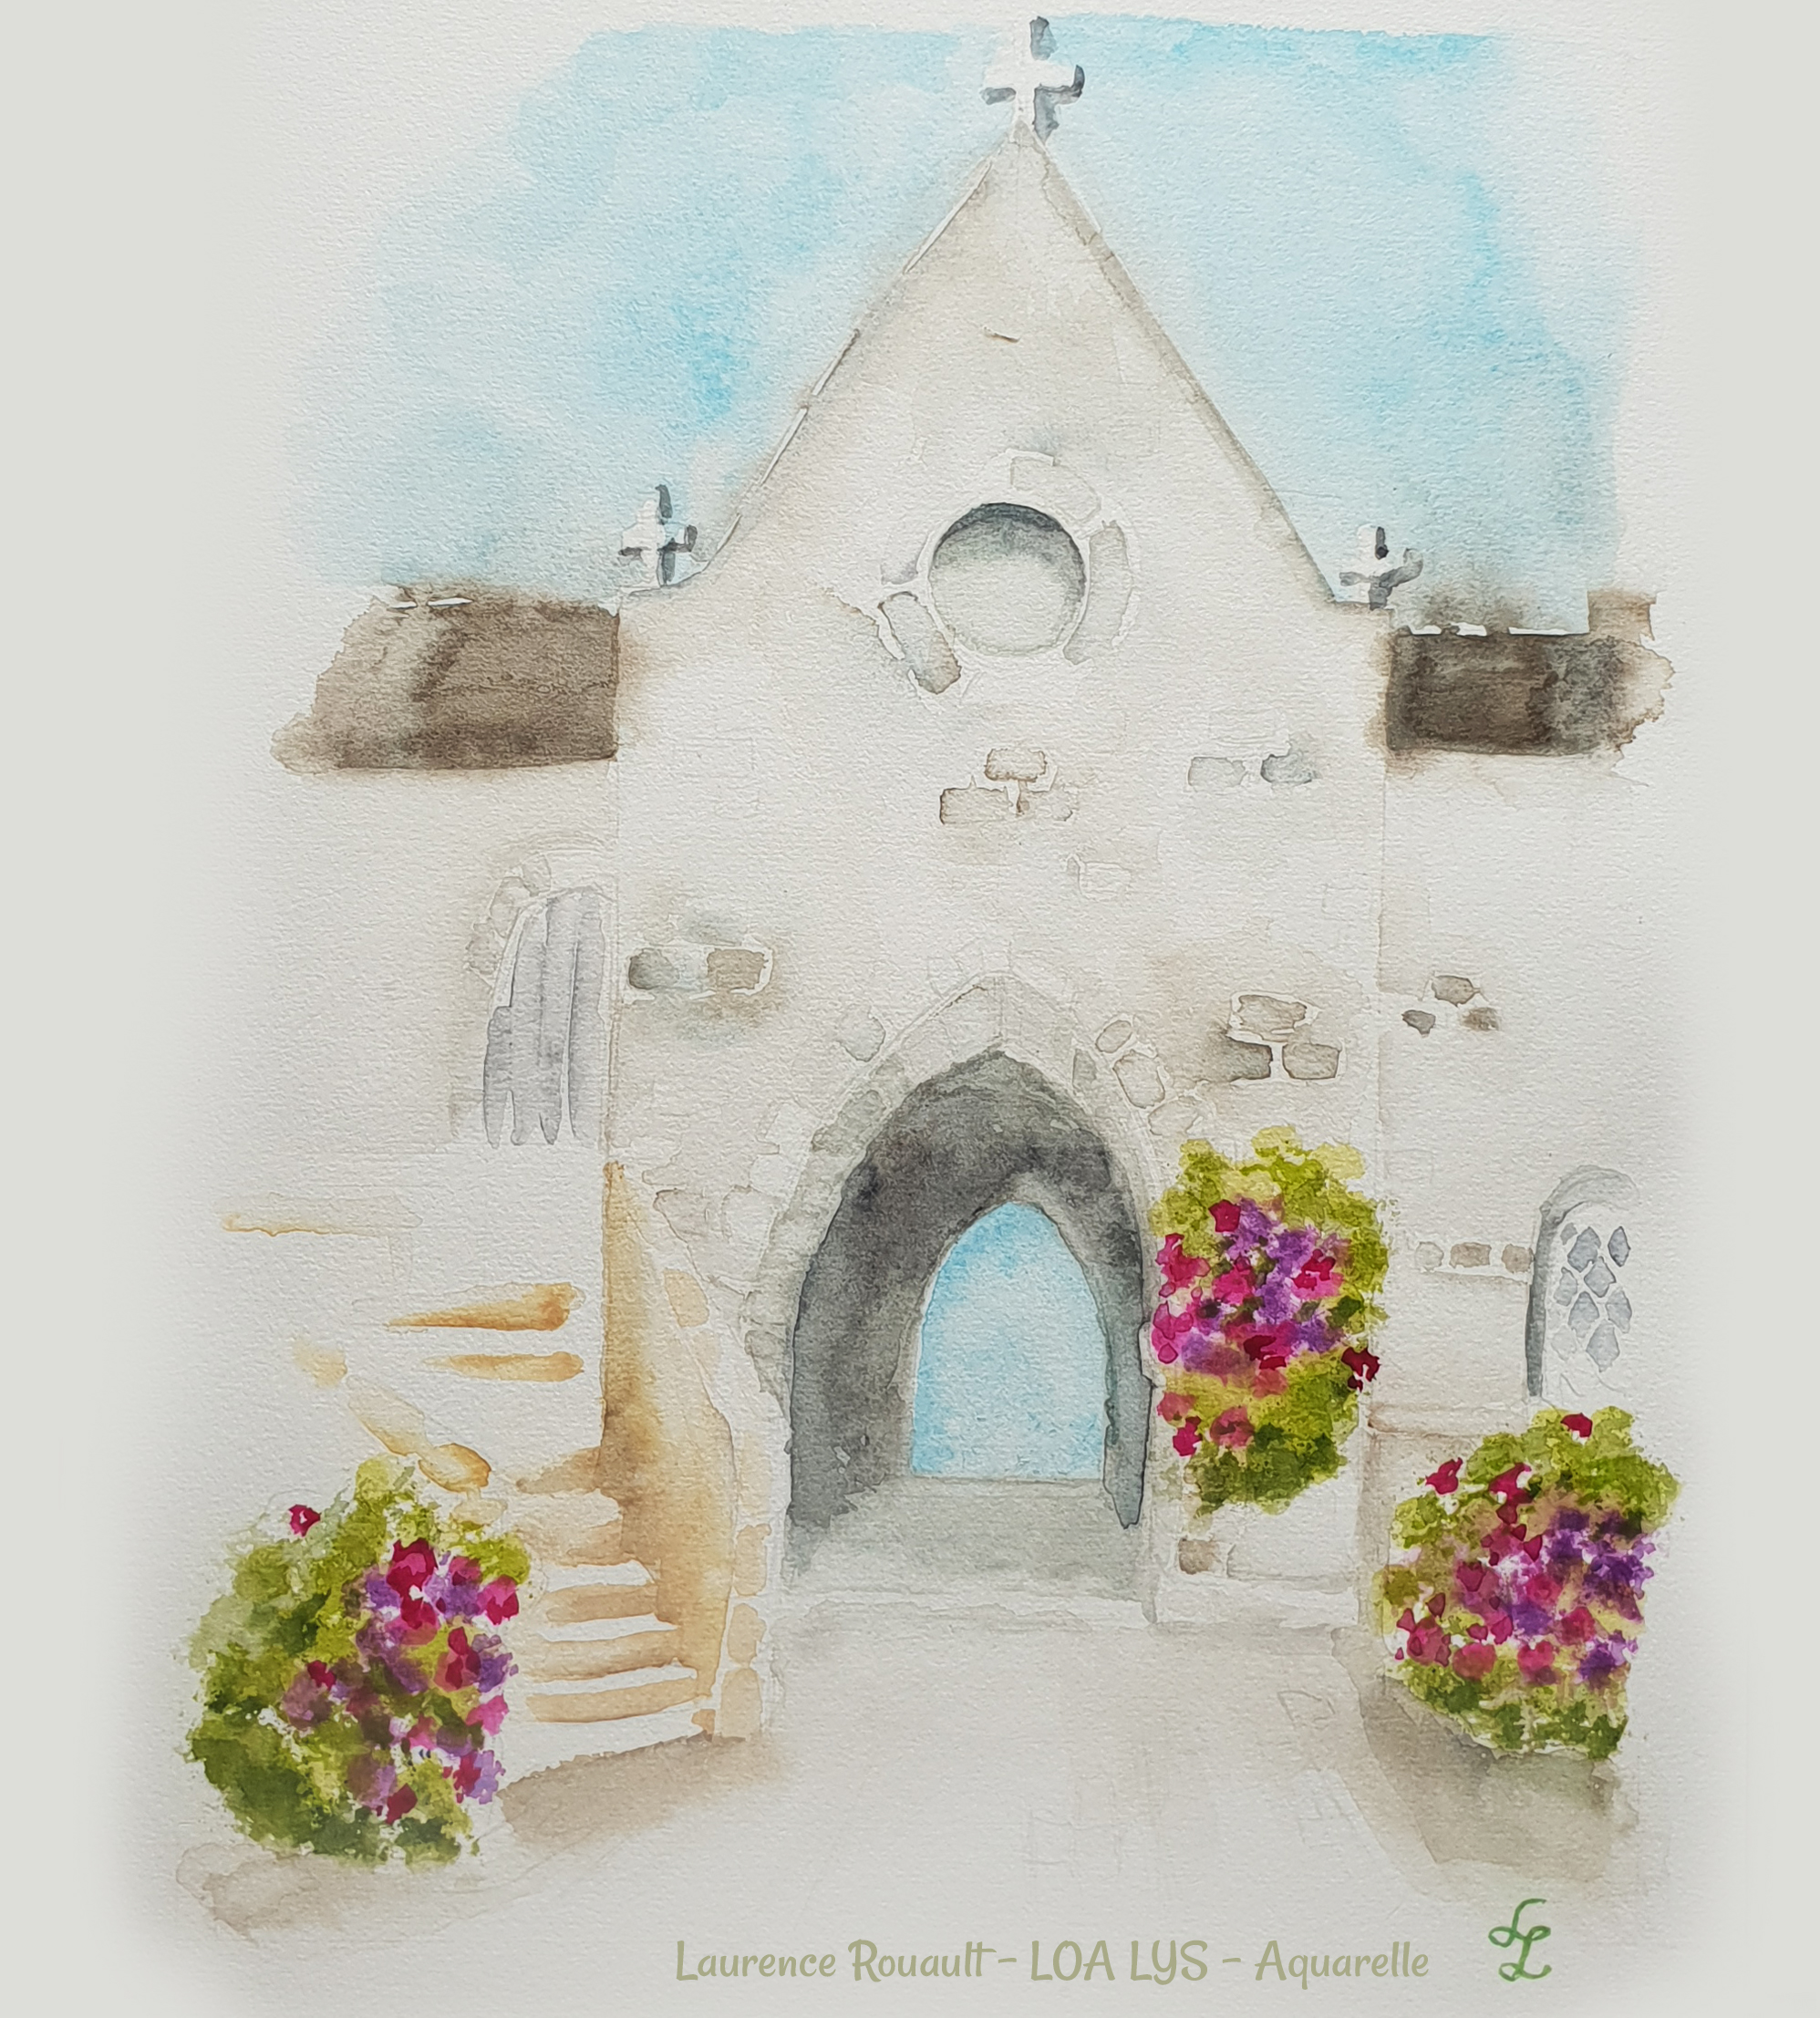 Chapelle aquarelle